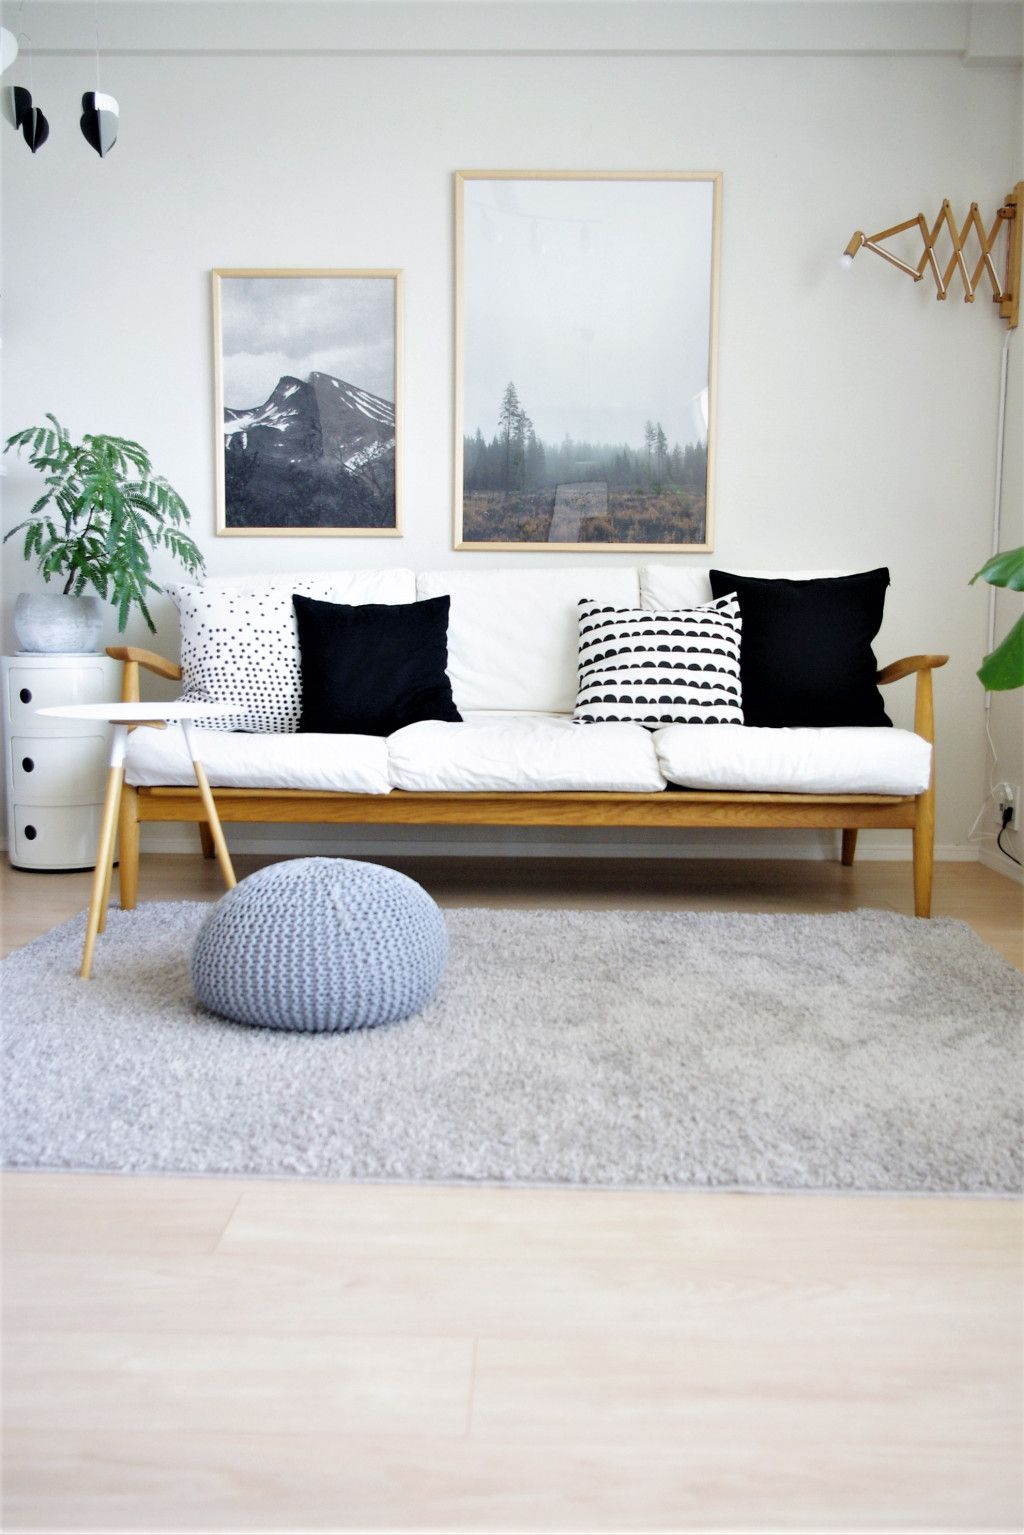 wooden sofa with white cushion, wooden floor, grey rug, white wall, white side cabinget